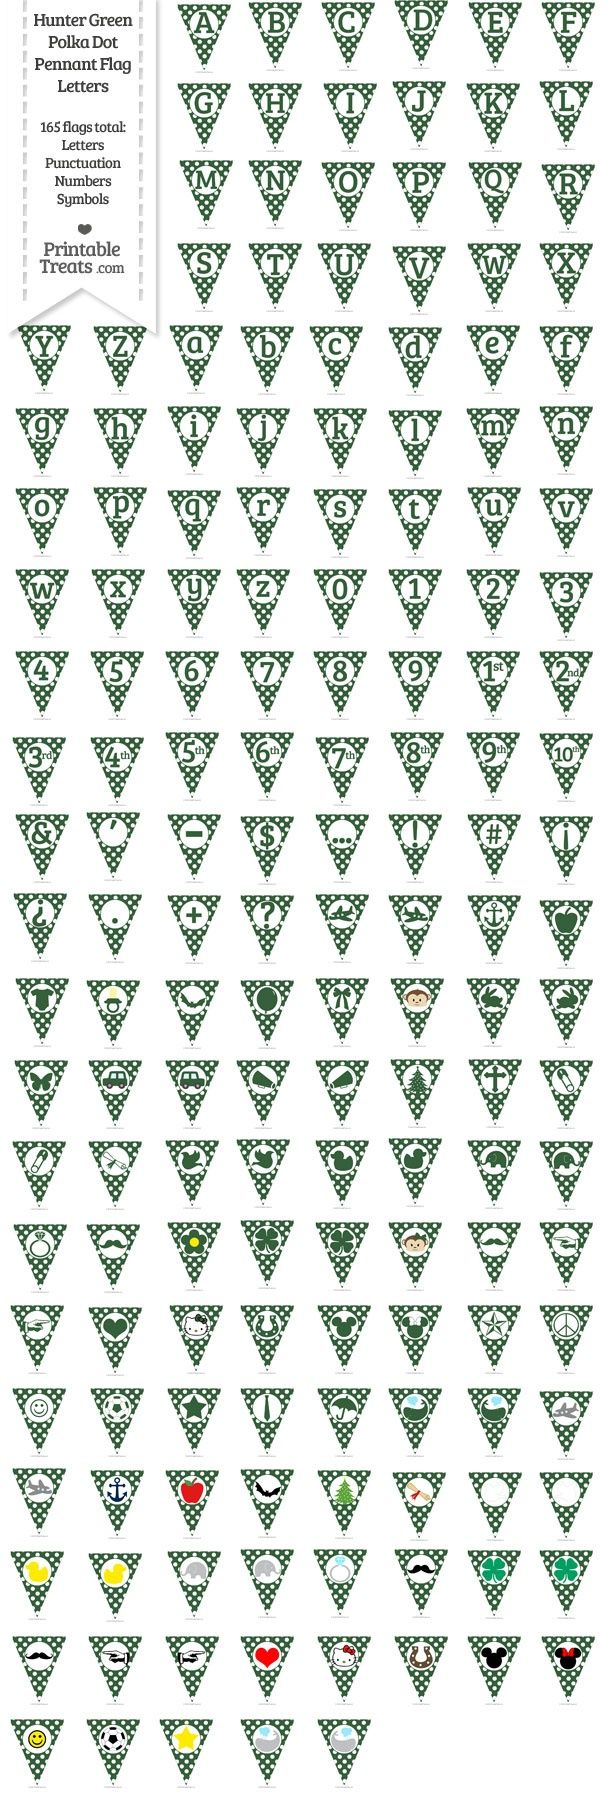 165 Hunter Green Polka Dot Pennant Flag Letters Password